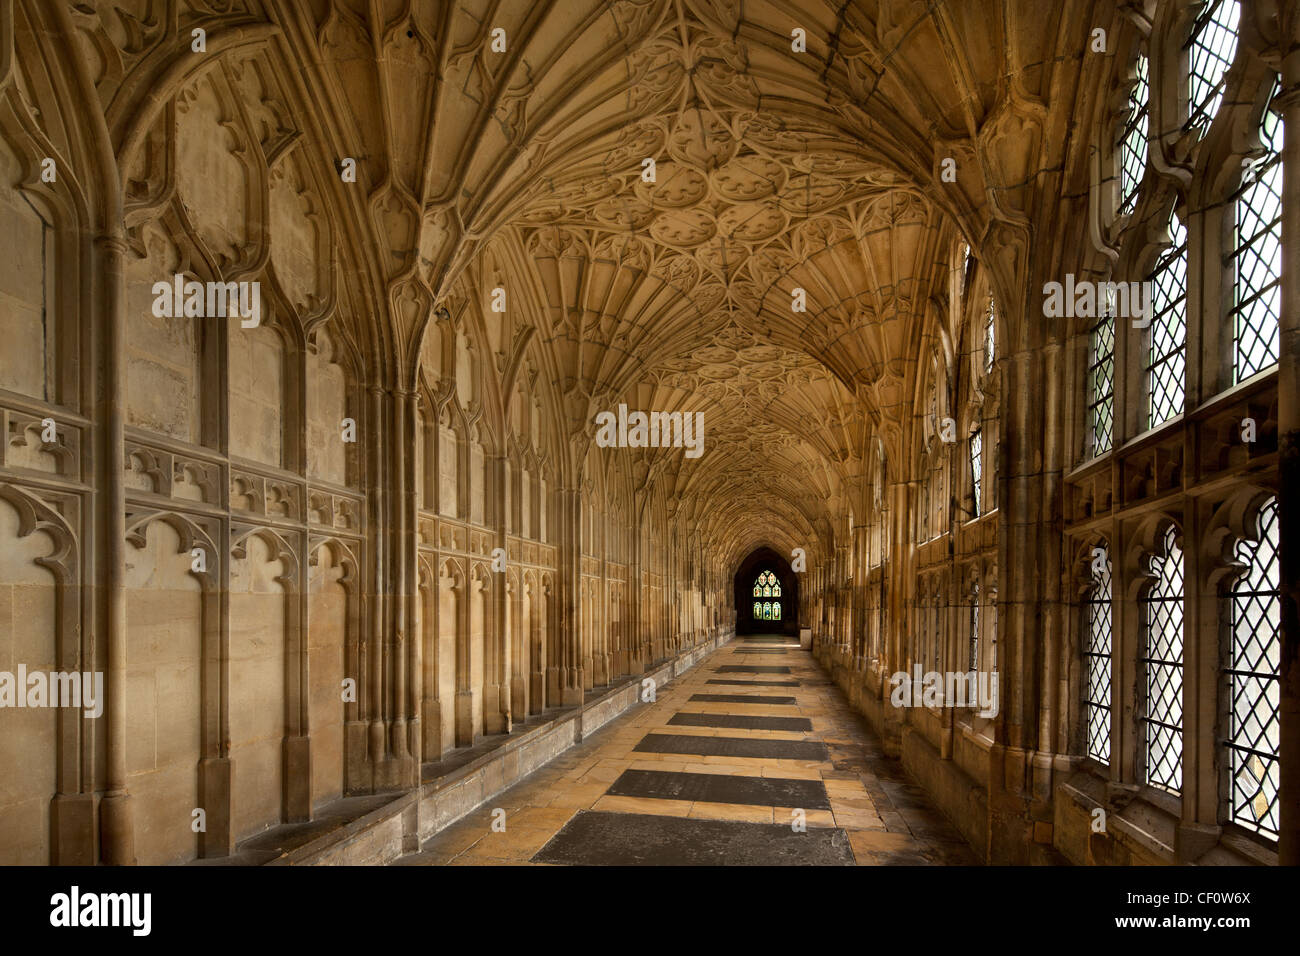 interior of cloisters at Gloucester cathedral where harry Potter films were made,Gloucestershire,england - Stock Image